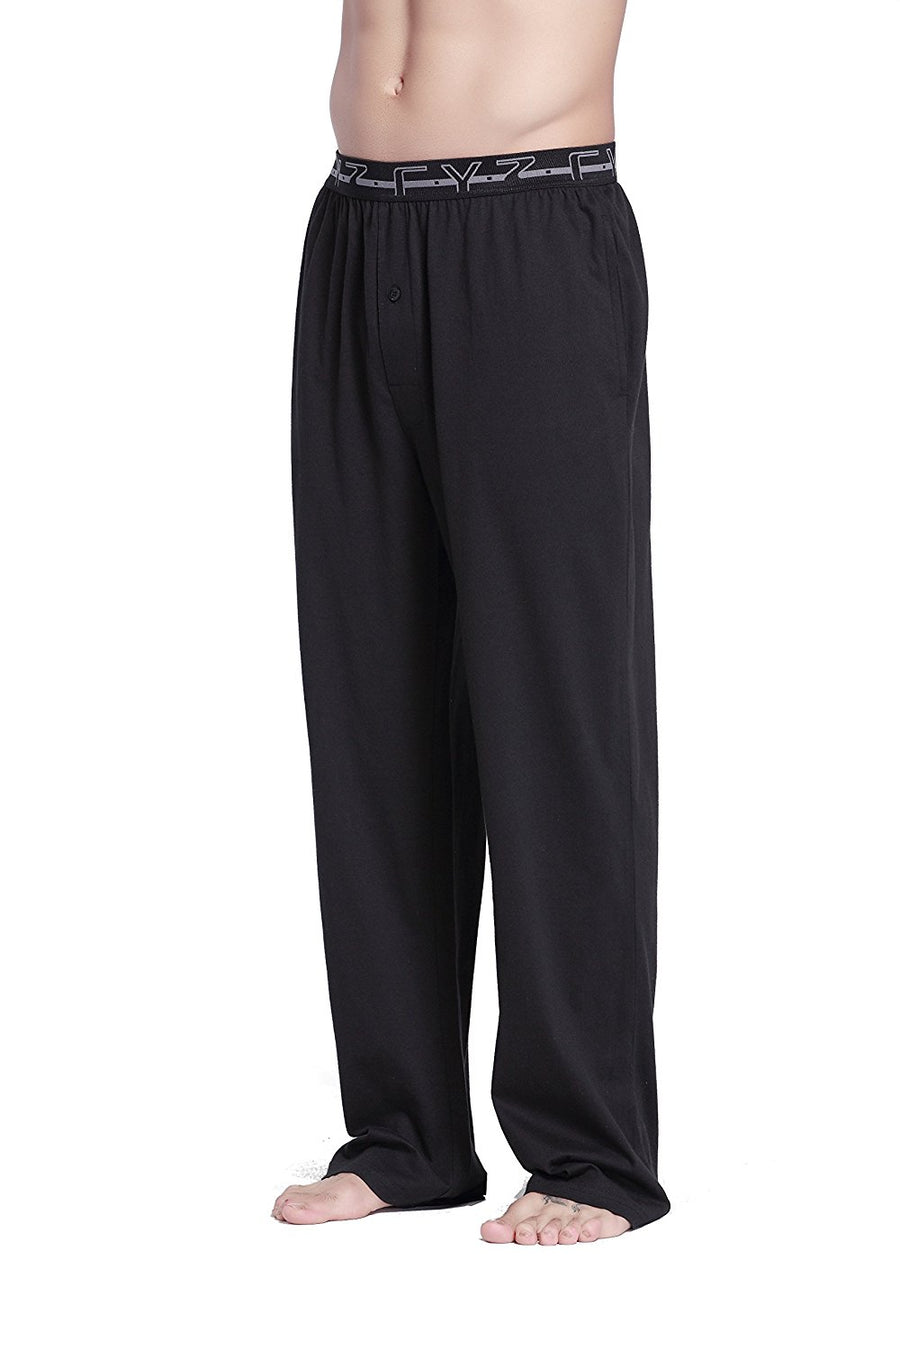 CYZ Men's 100% Cotton Knit Pajama Pants